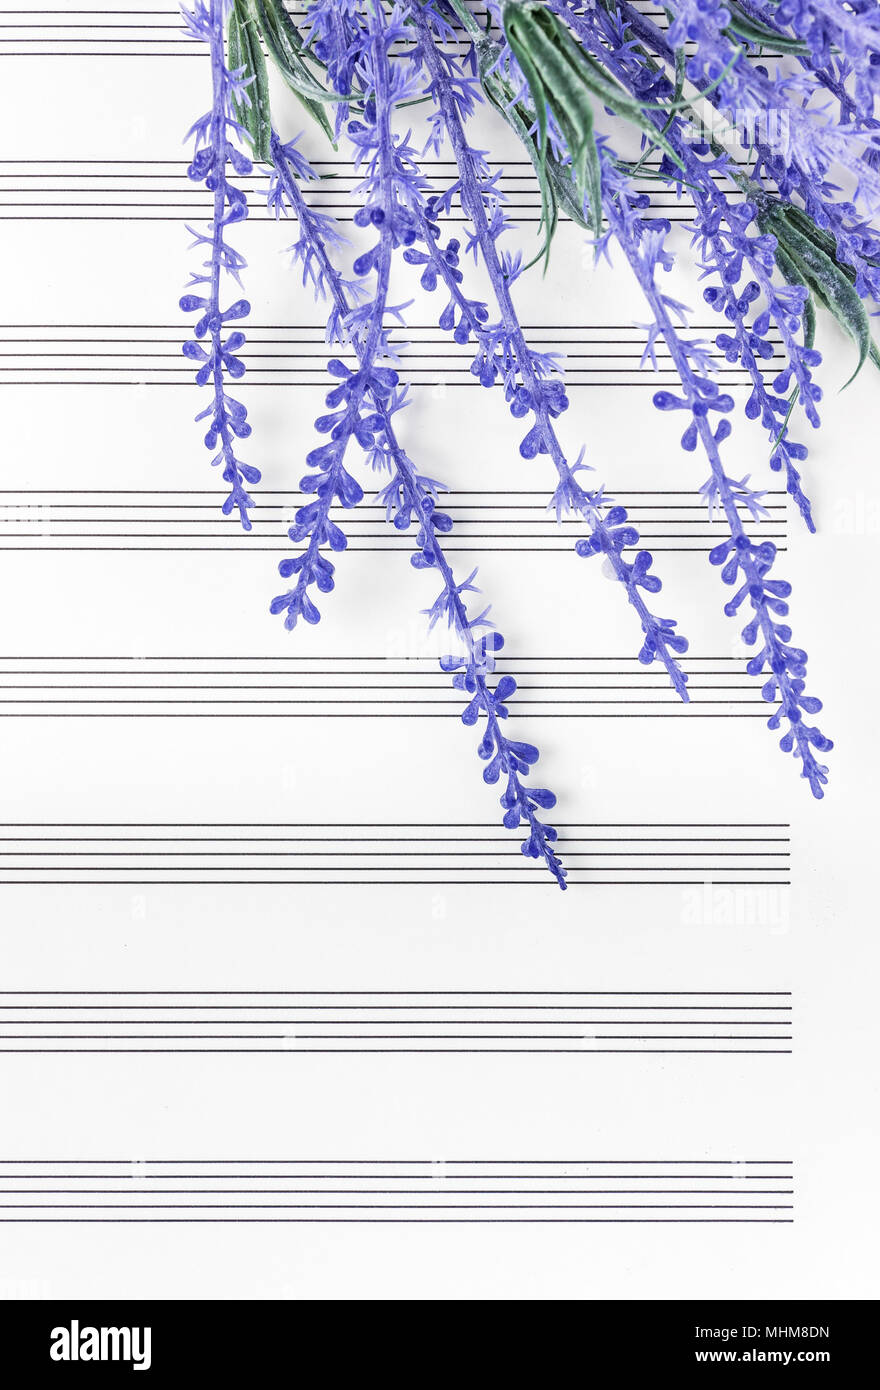 Blue Lavender Flowers On Empty Sheet Music Paper Sounds Of Nature